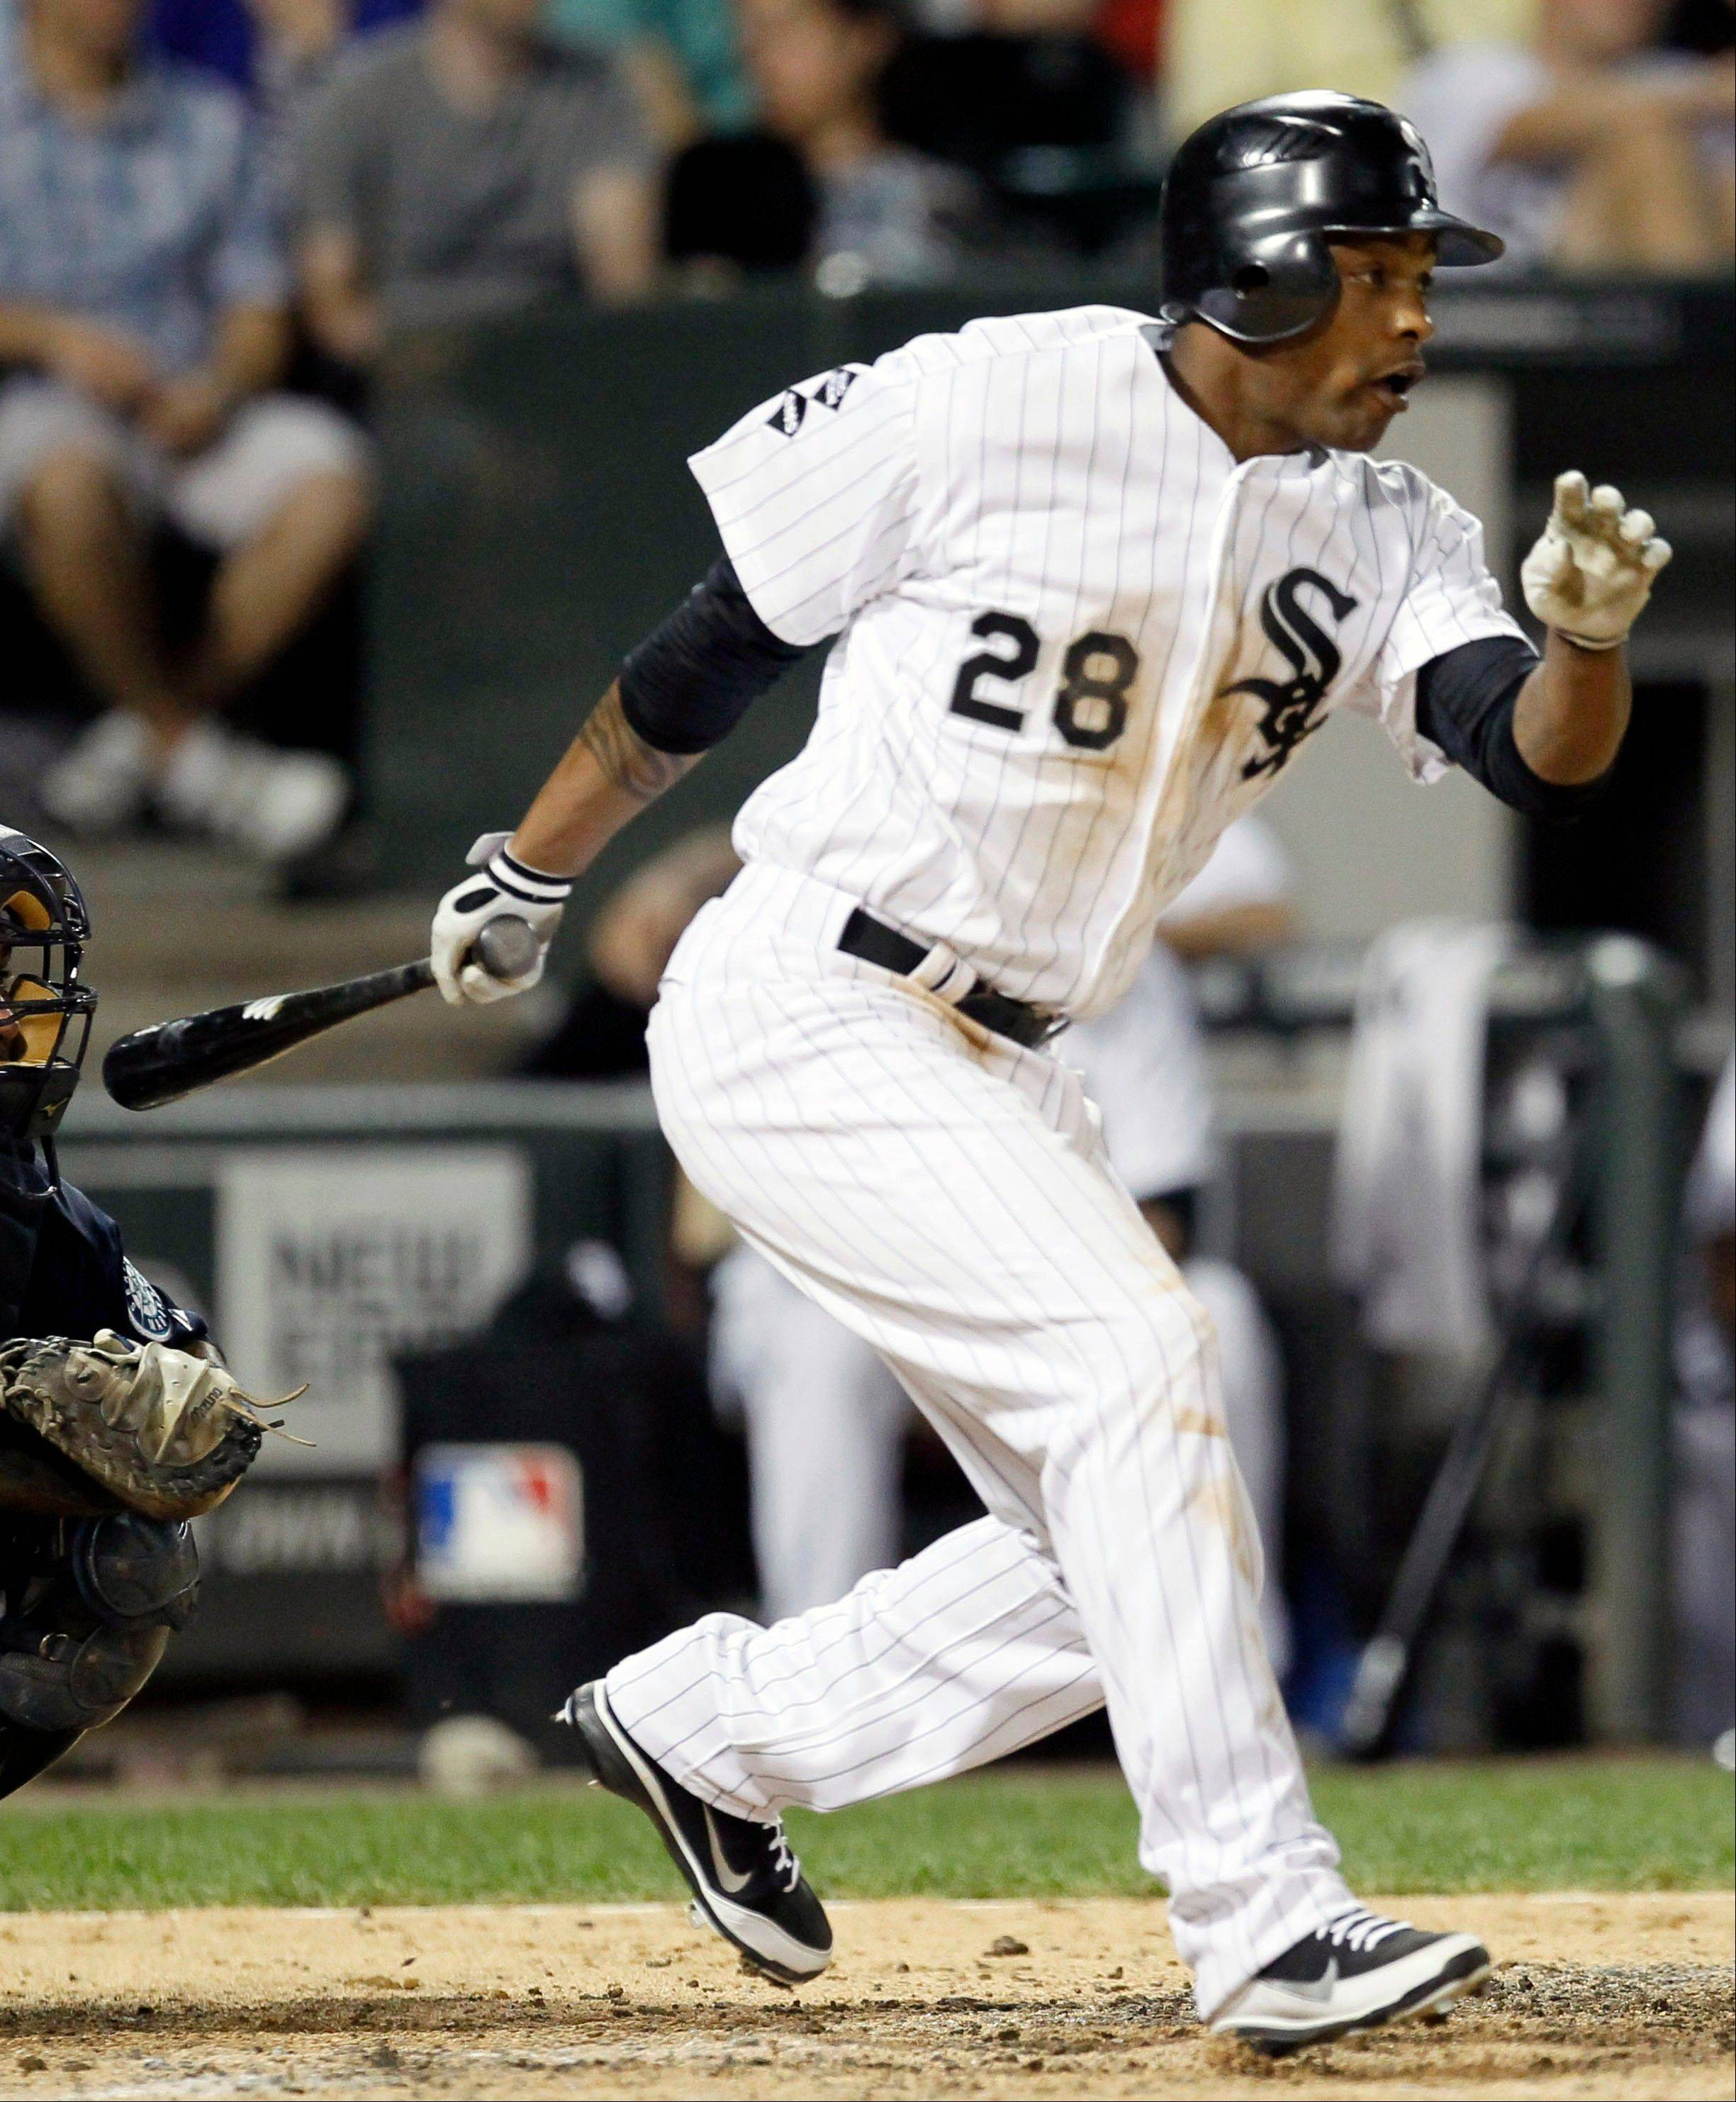 Outfielder Dewayne Wise, who hit .258 for the White Sox in 45 games last season, has agreed to a one-year deal with the club.